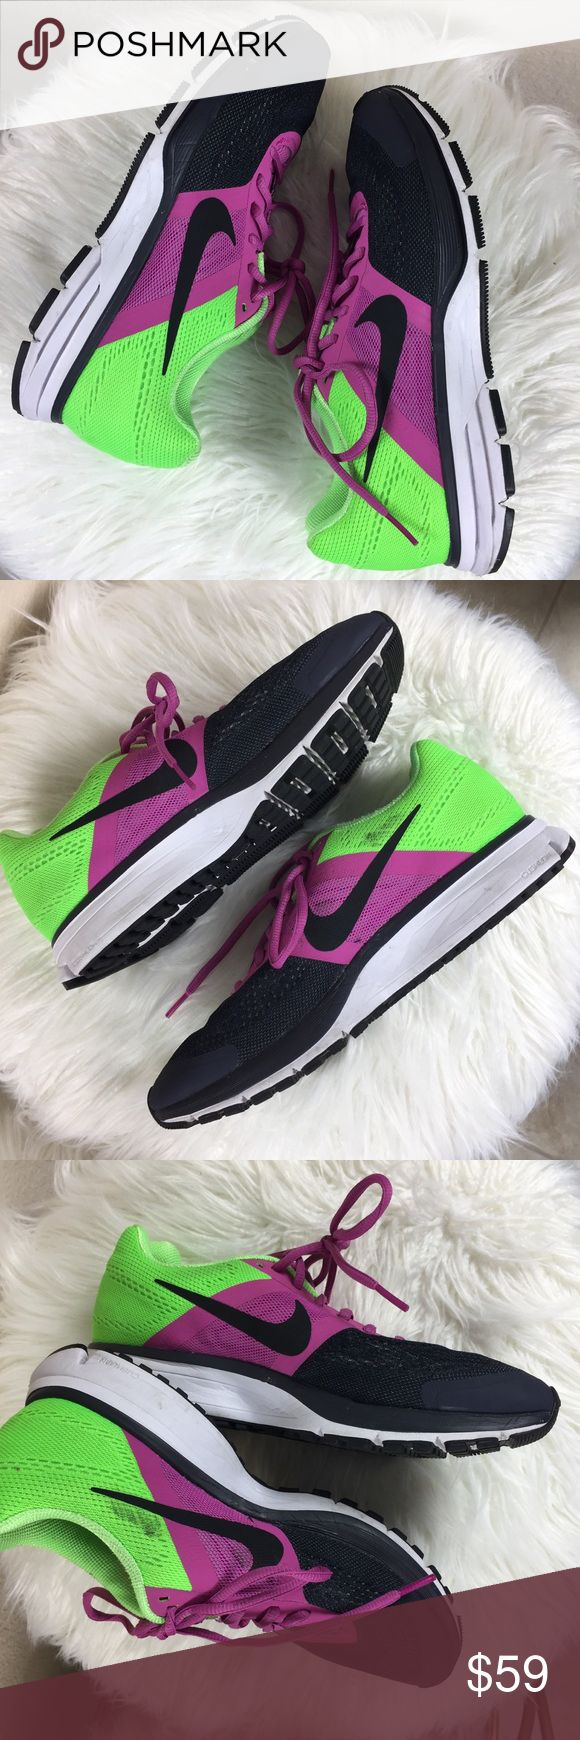 NIKE PEGASUS 30 XE NEON RUNNING SHOES 8.5 ATHLETIC Excellent overall condition.  Black mark on the innerside of one of the shoes-as pictured.  Women's 8.5, European 40.  Fast shipper! ❤️ Nike Shoes Athletic Shoes